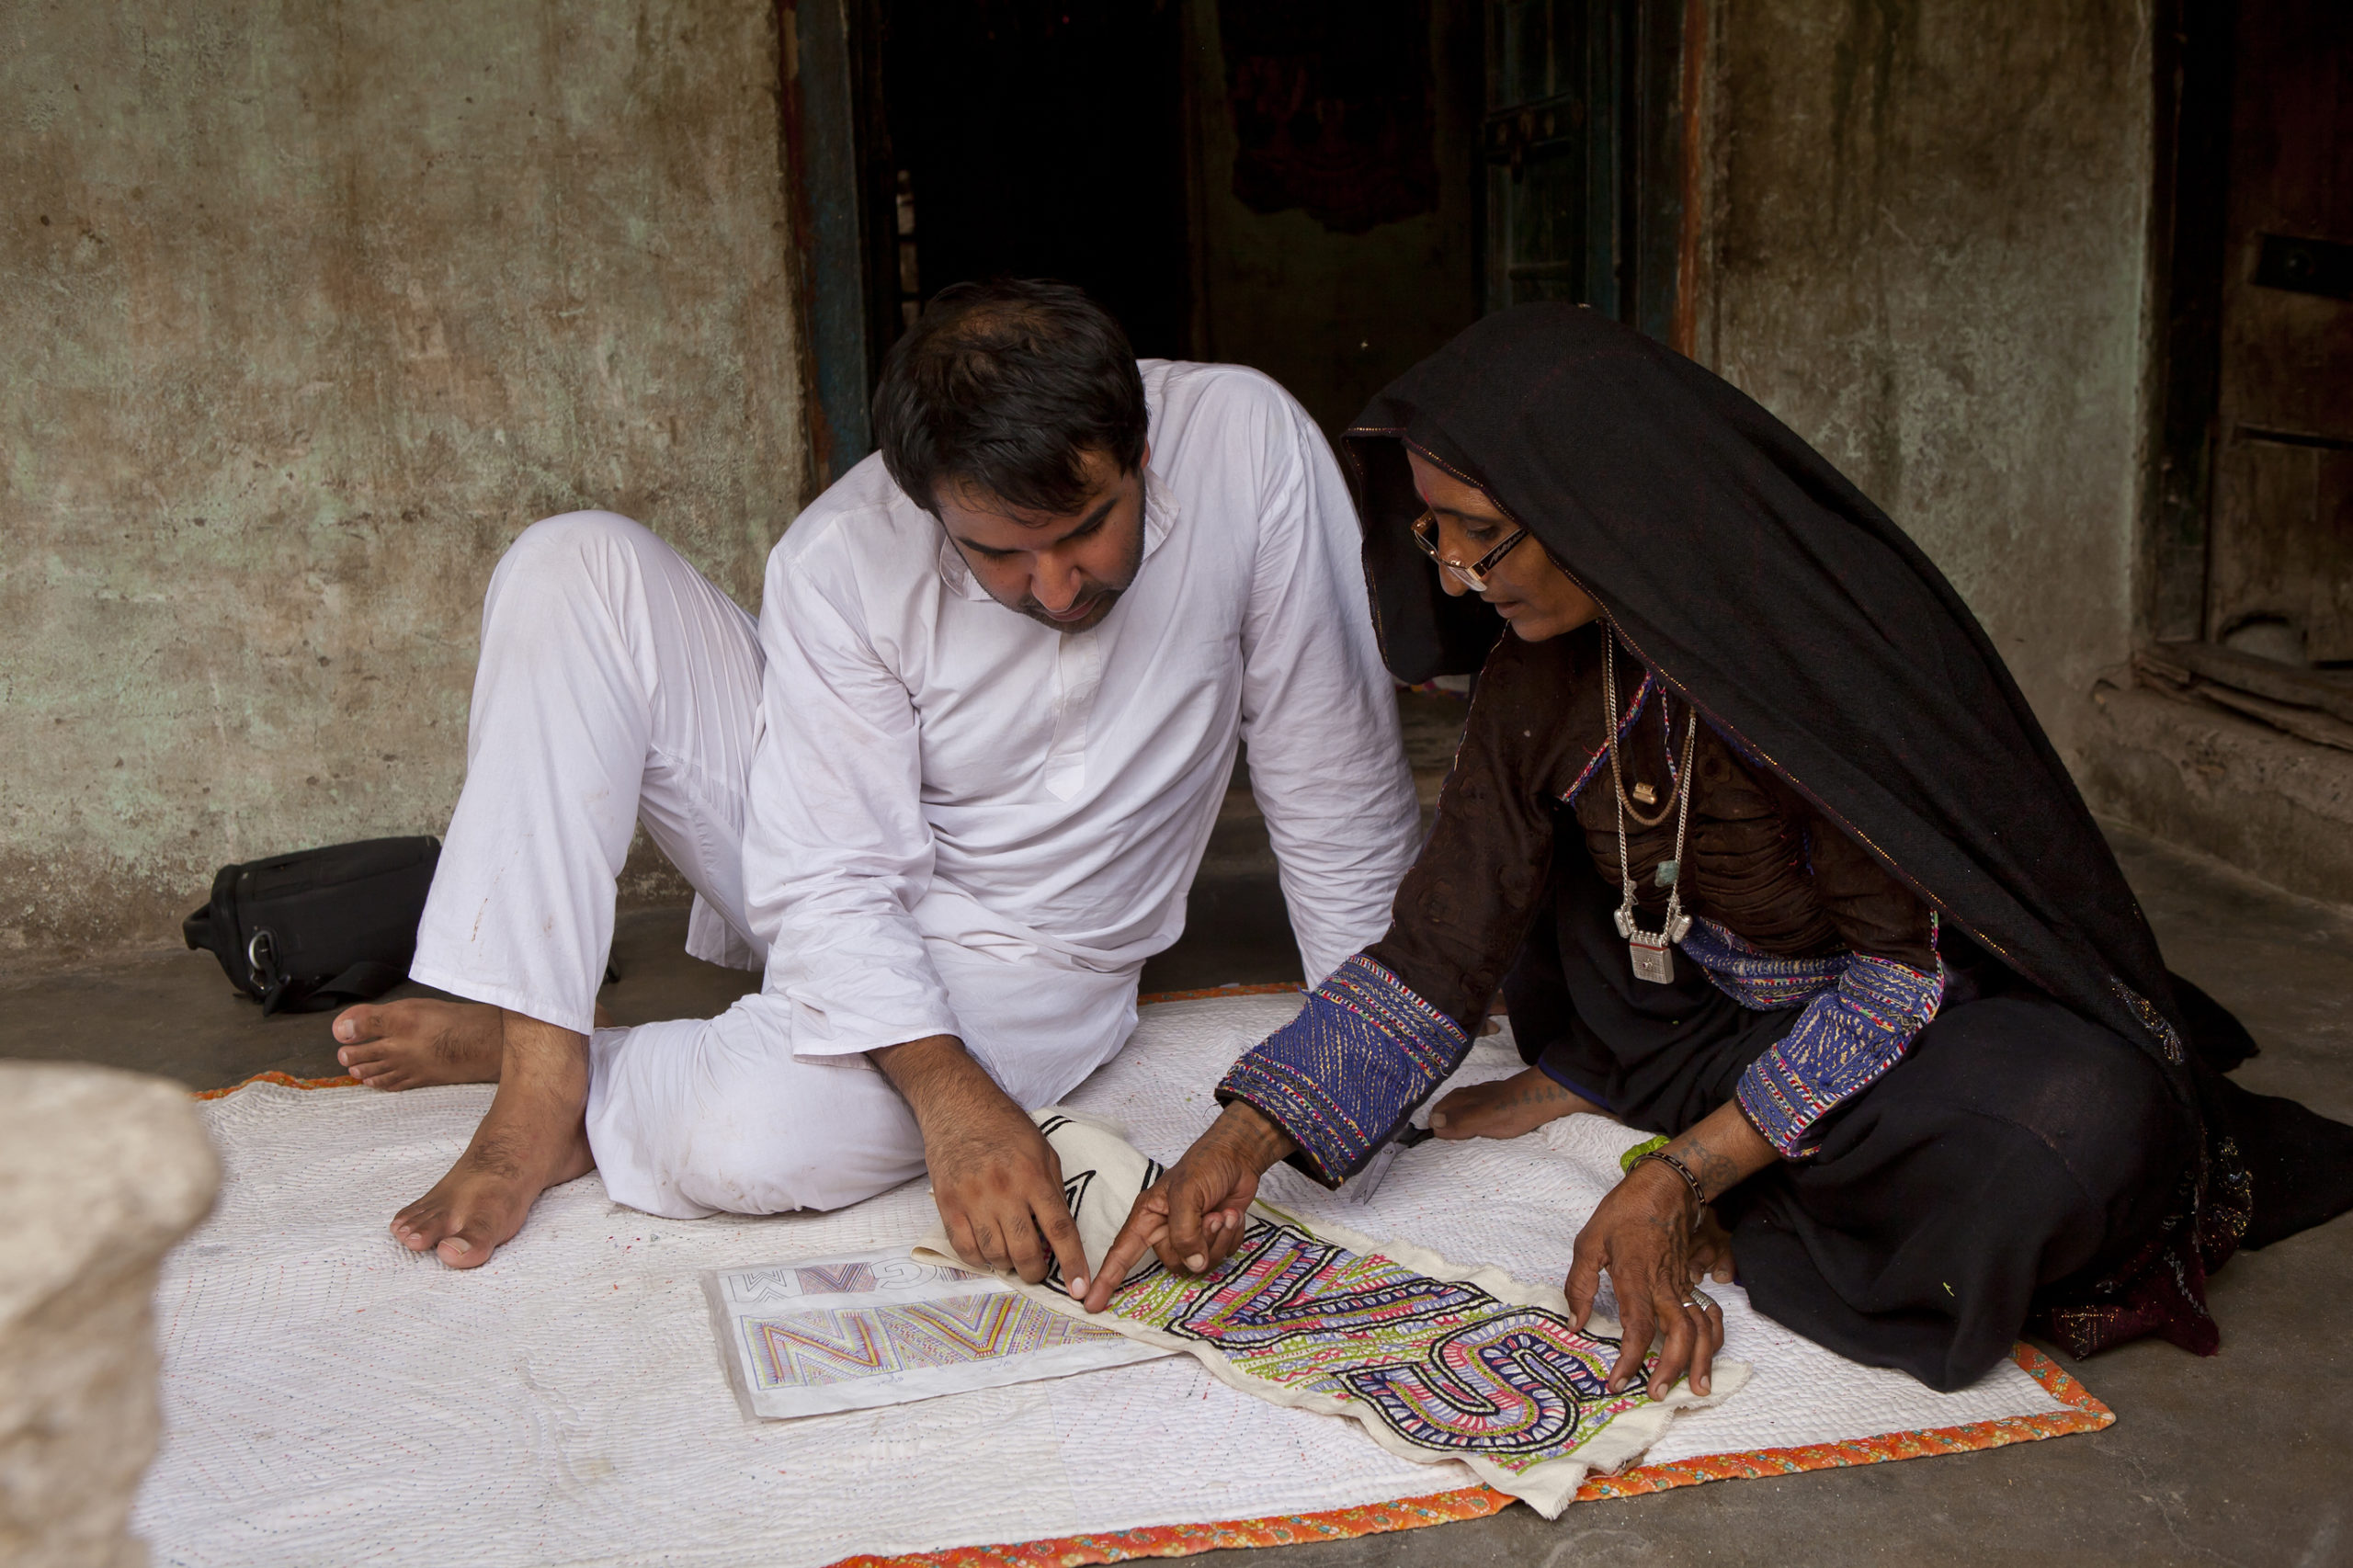 A discussion between Ishan and Sajnu ben, a craftswoman form the Dhebaria Rabari community, at her home in Kukadsar village in Kutch, Gujarat